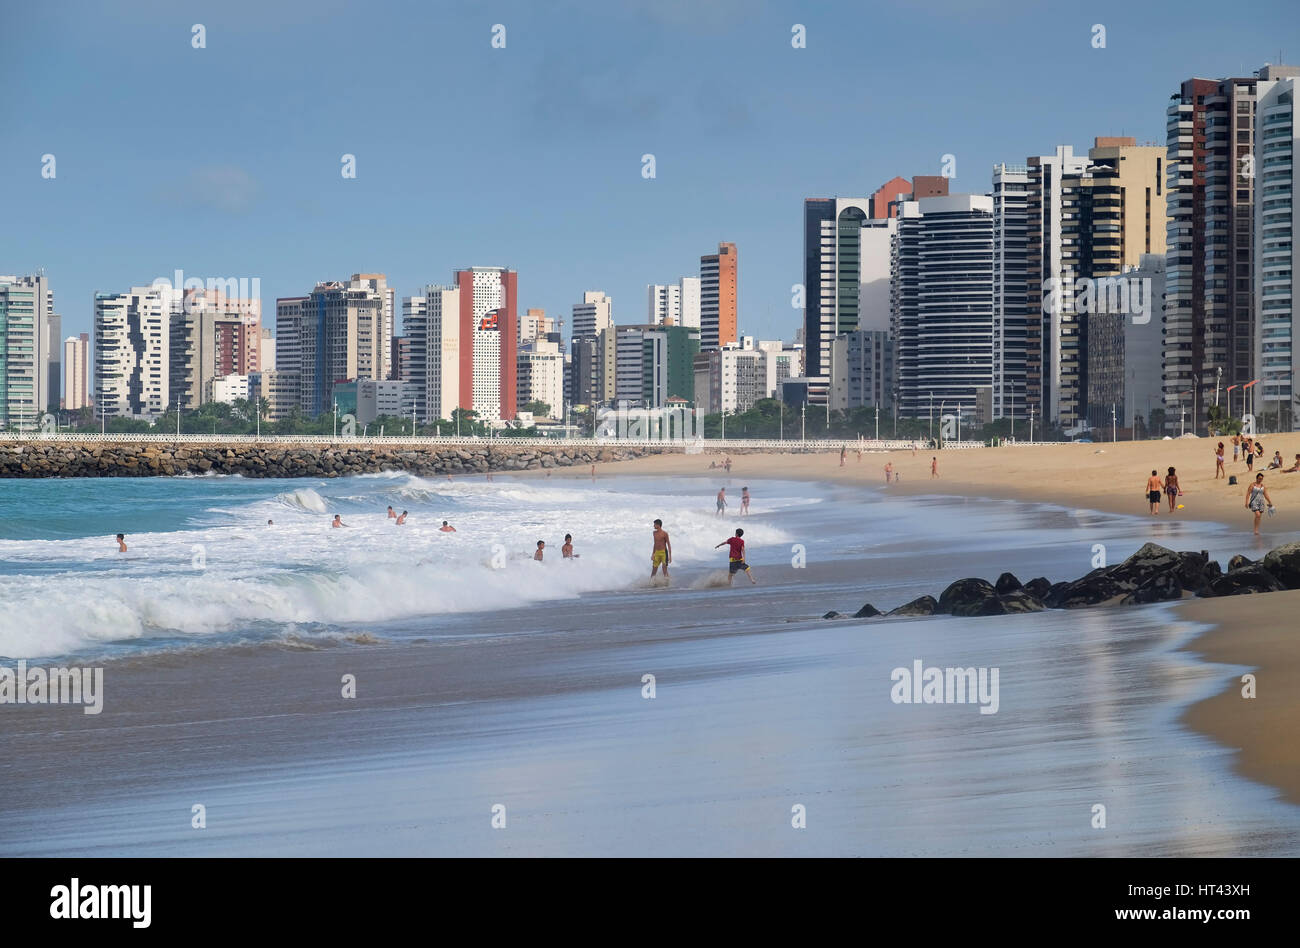 Golden Sands of Praia de Iracema Beach, Fortaleza, State of Ceara, Brazil, South America - Stock Image